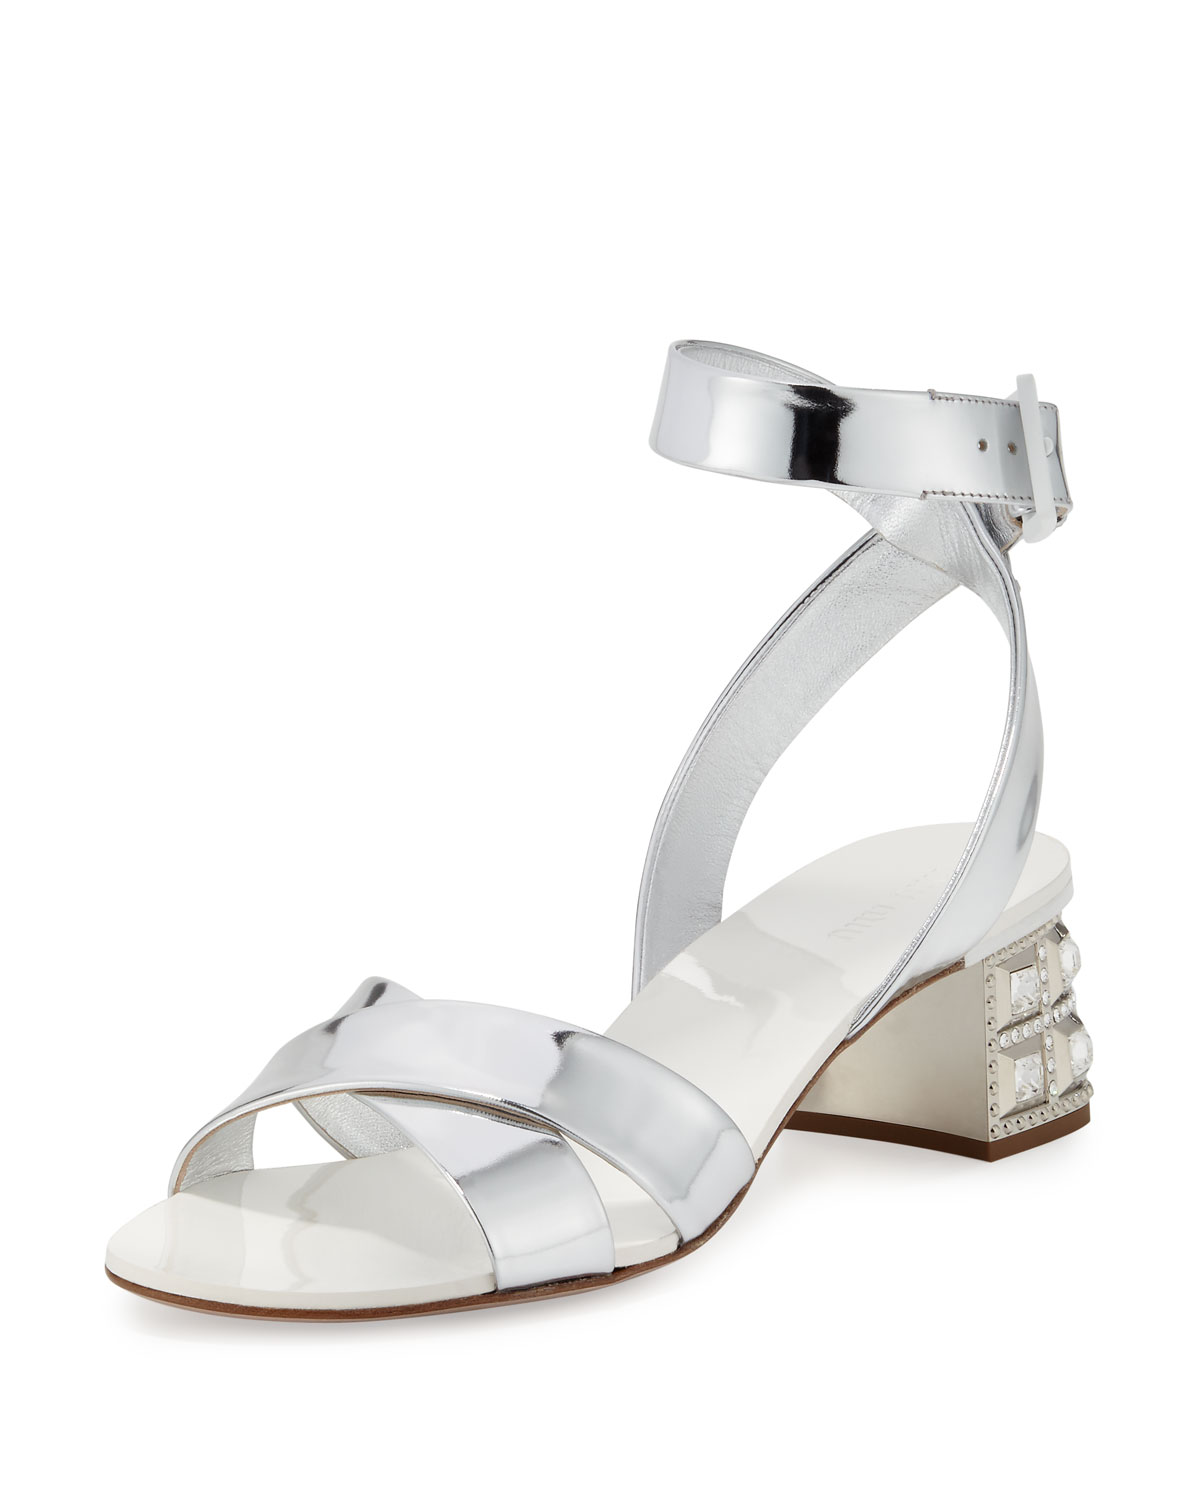 e2df8317b588 Miu Miu Metallic Leather Jewel-Heel Sandal